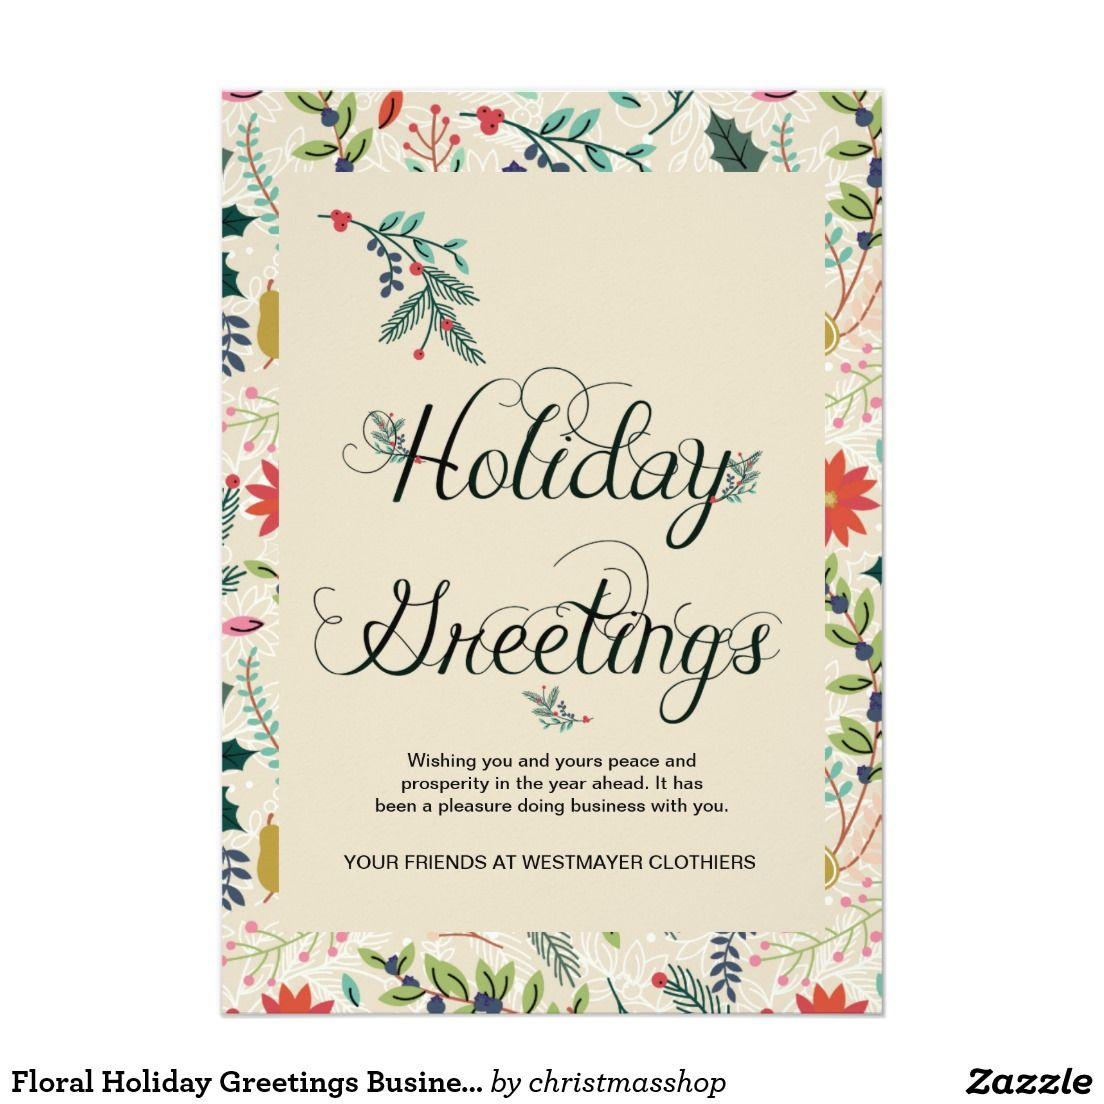 Floral Holiday Greetings Business Corporate Card Zazzle